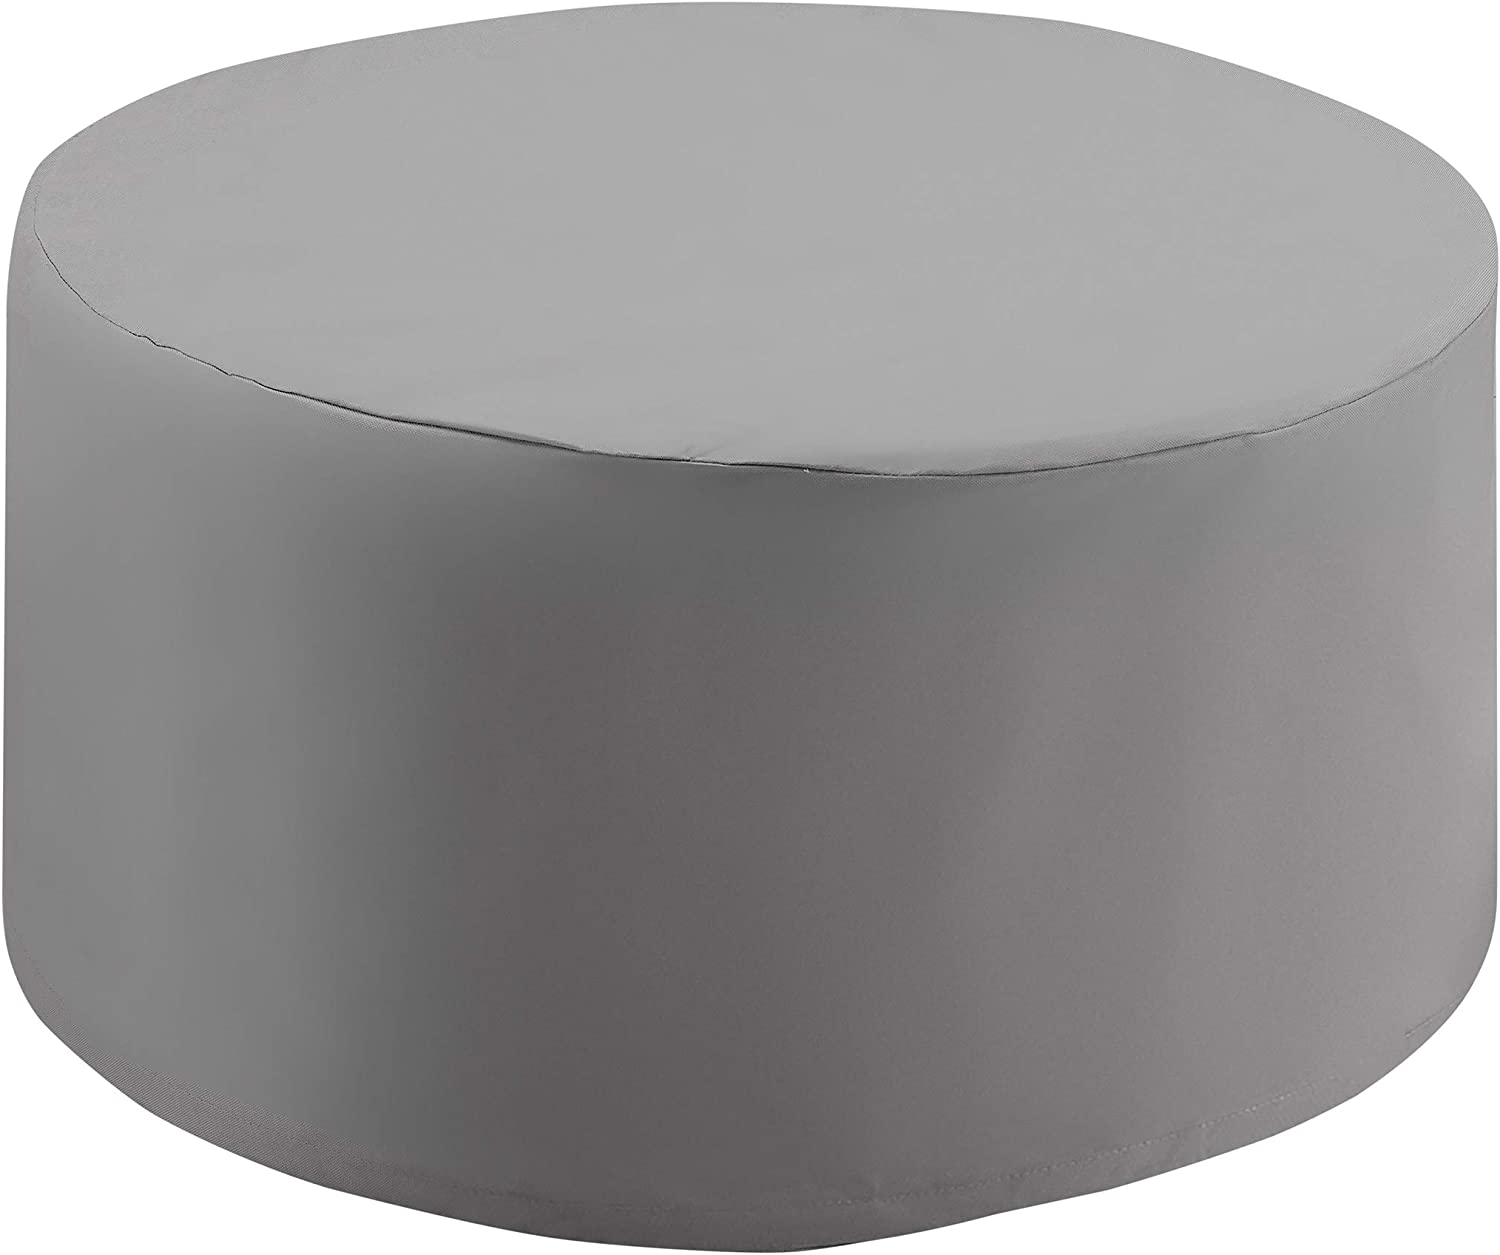 Crosley Furniture CO7508-GY Heavy-Gauge Reinforced Vinyl Cover for Catalina Round Table, Gray